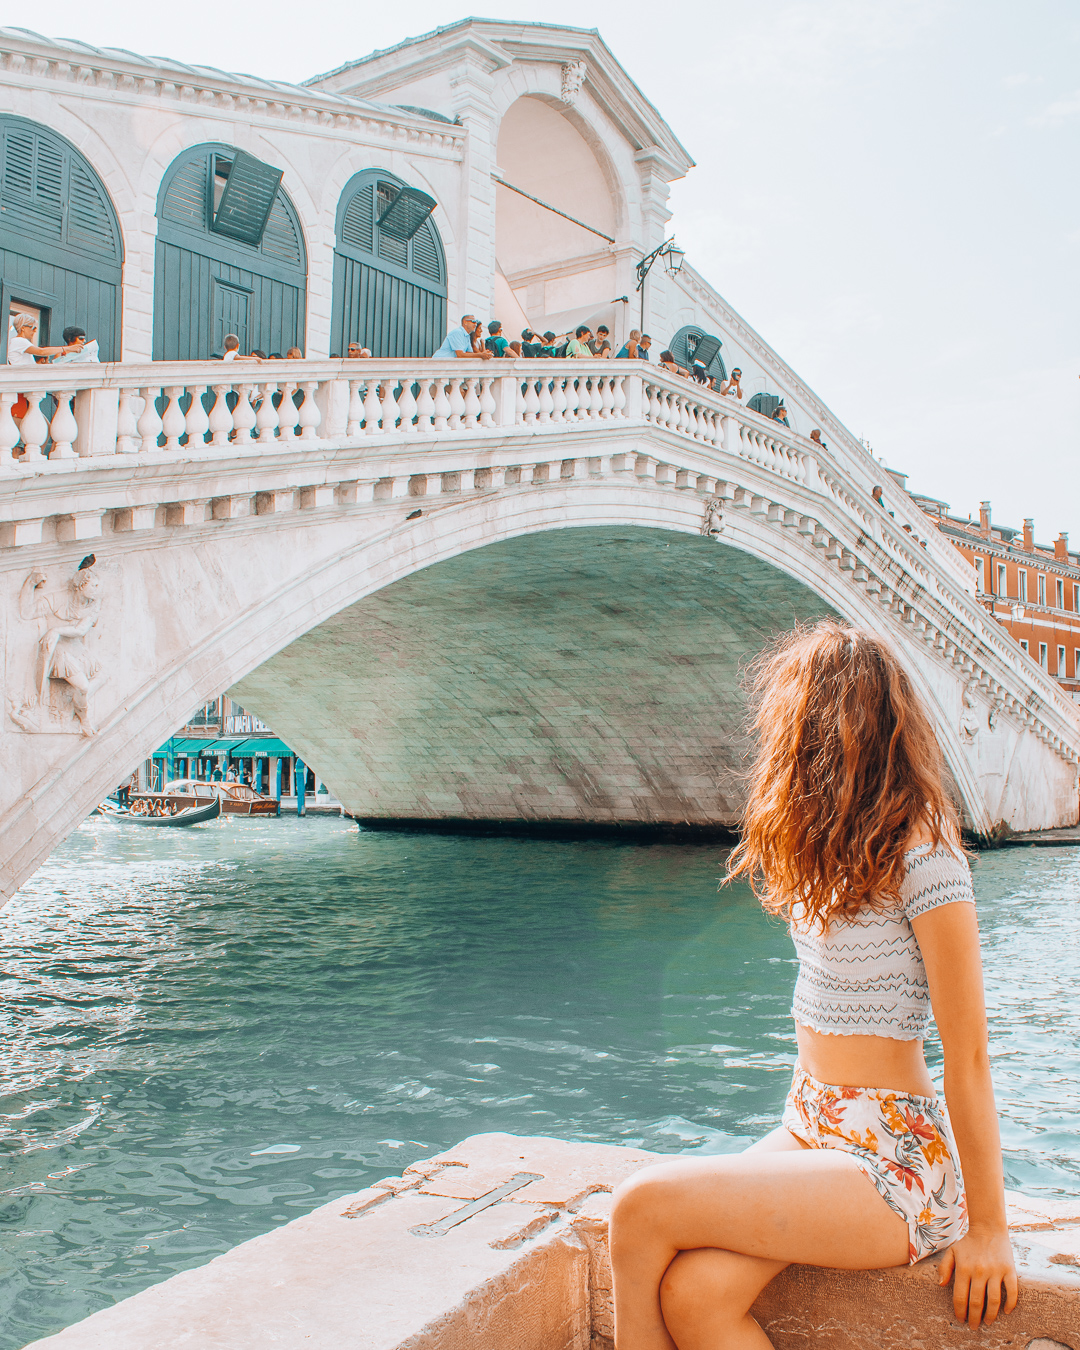 Girl looking at the Rialto bridge in Venice